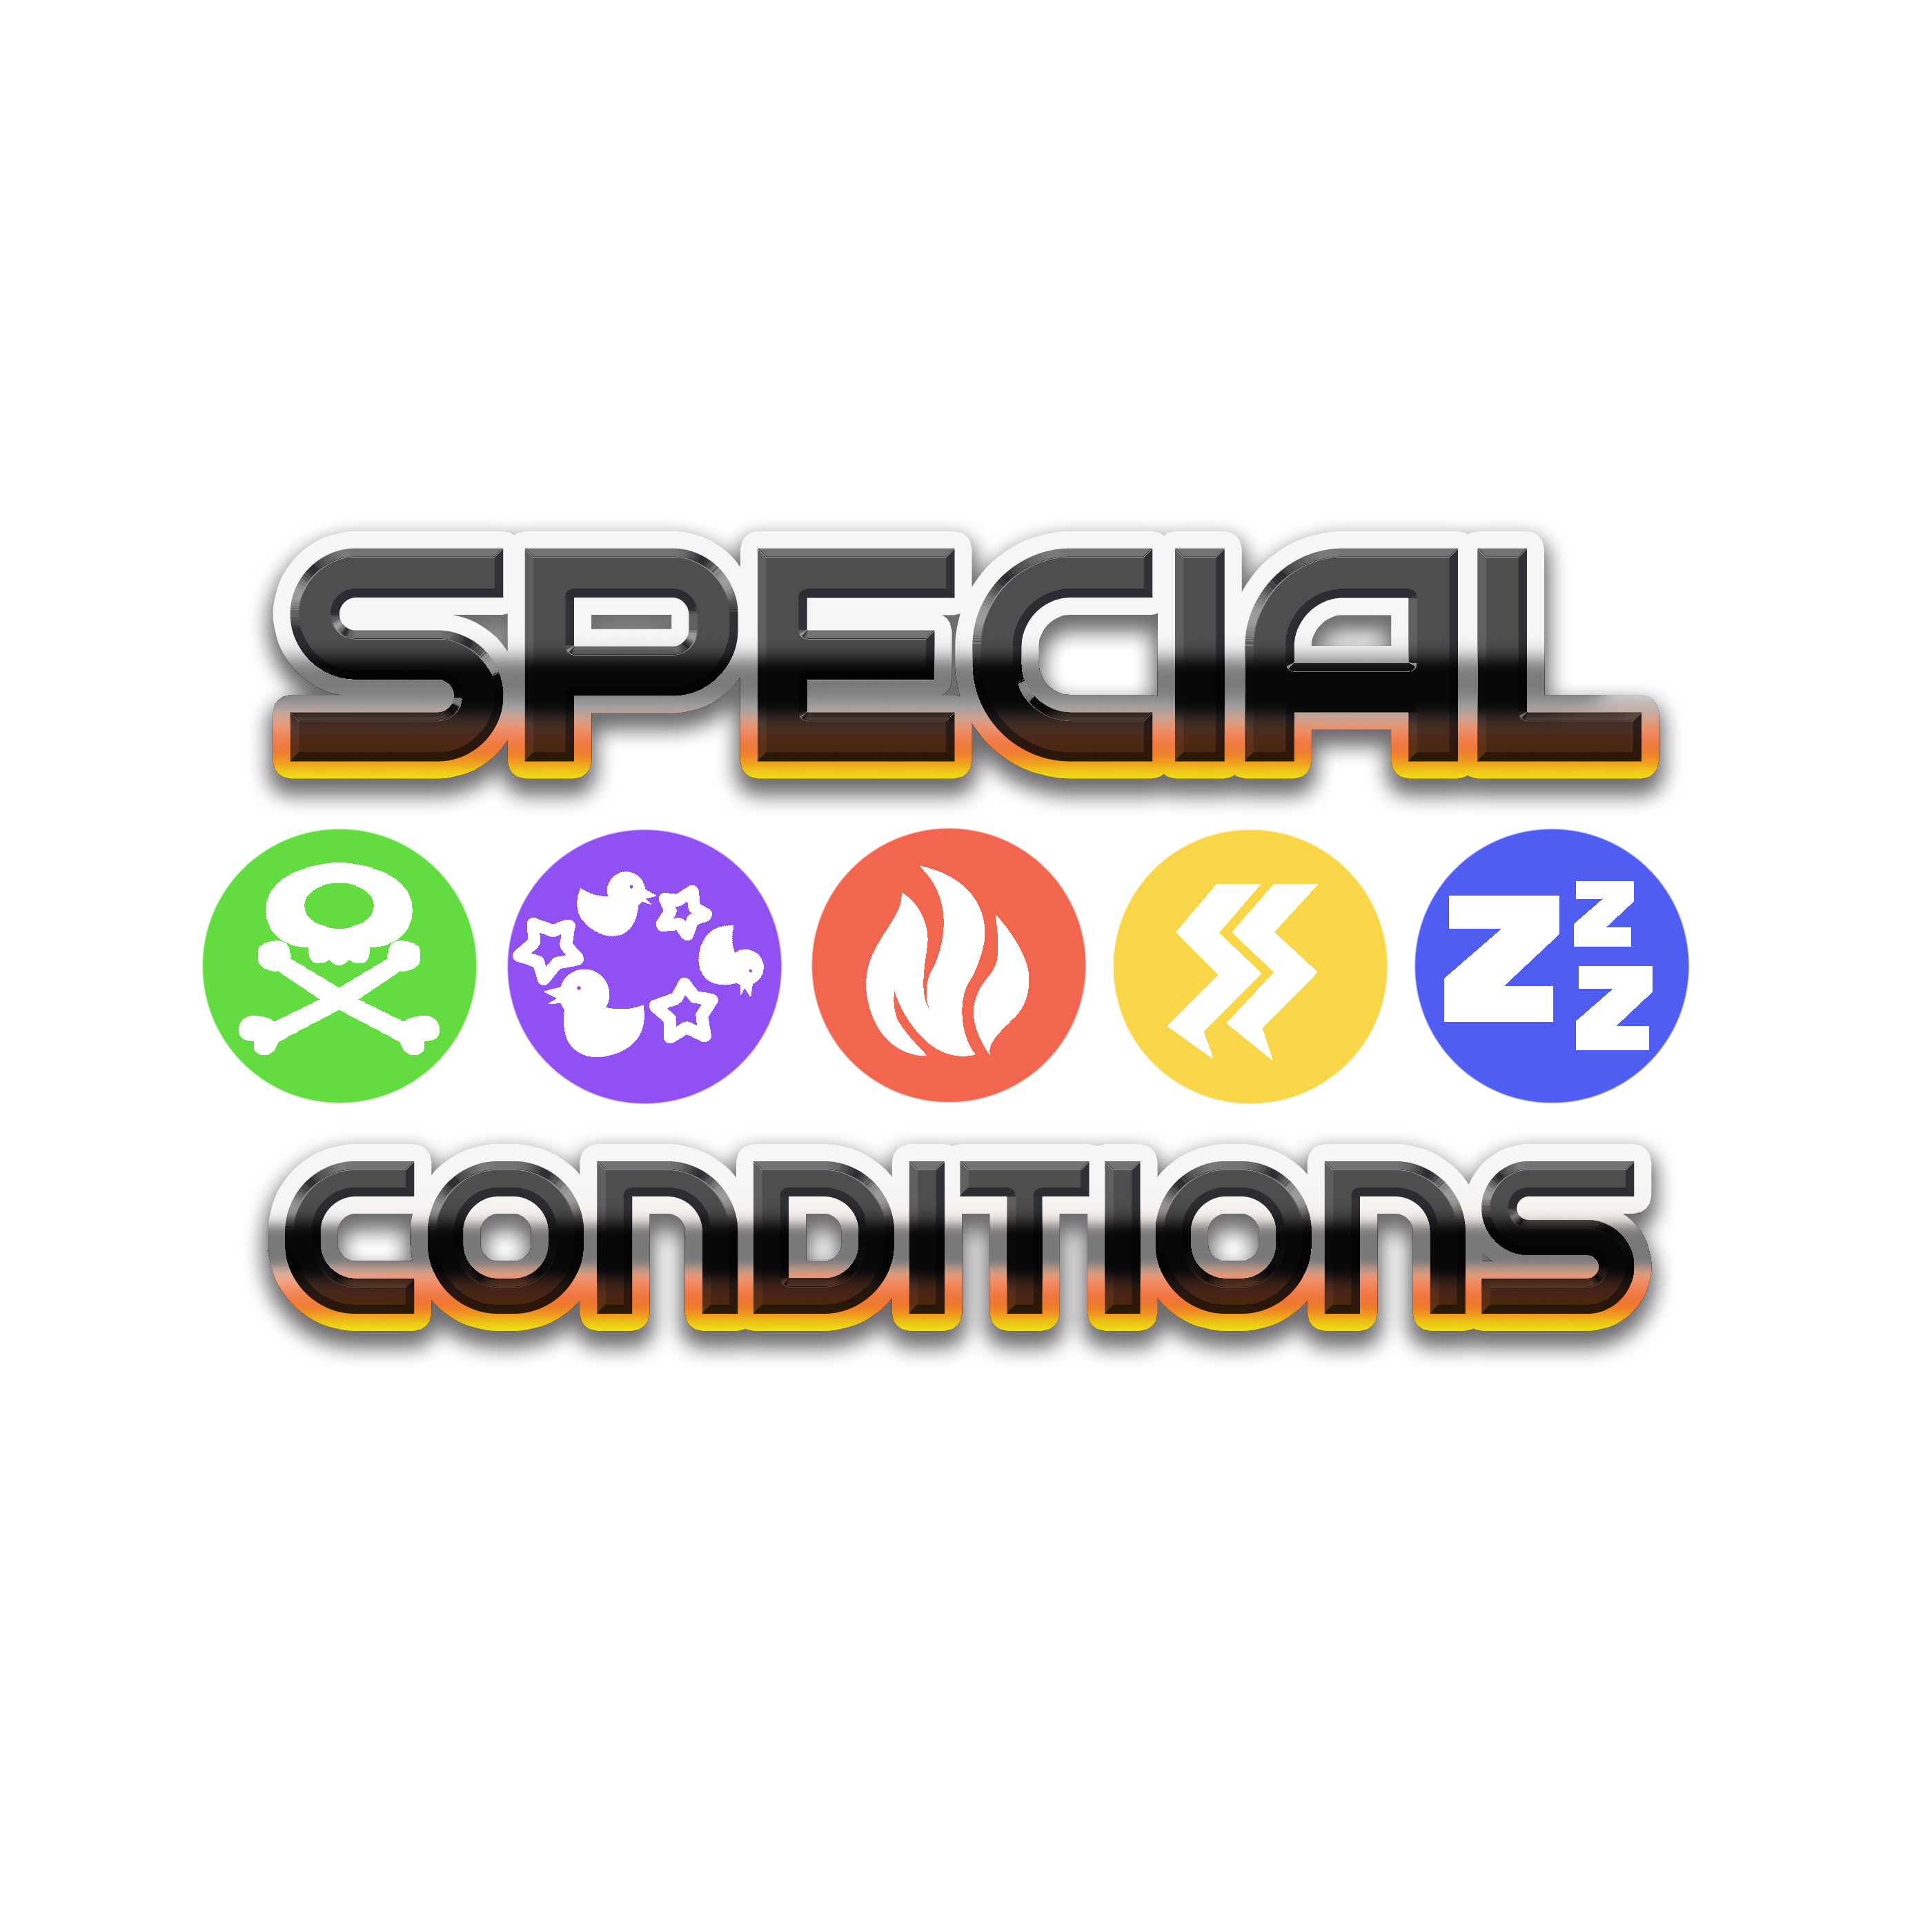 Special Conditions